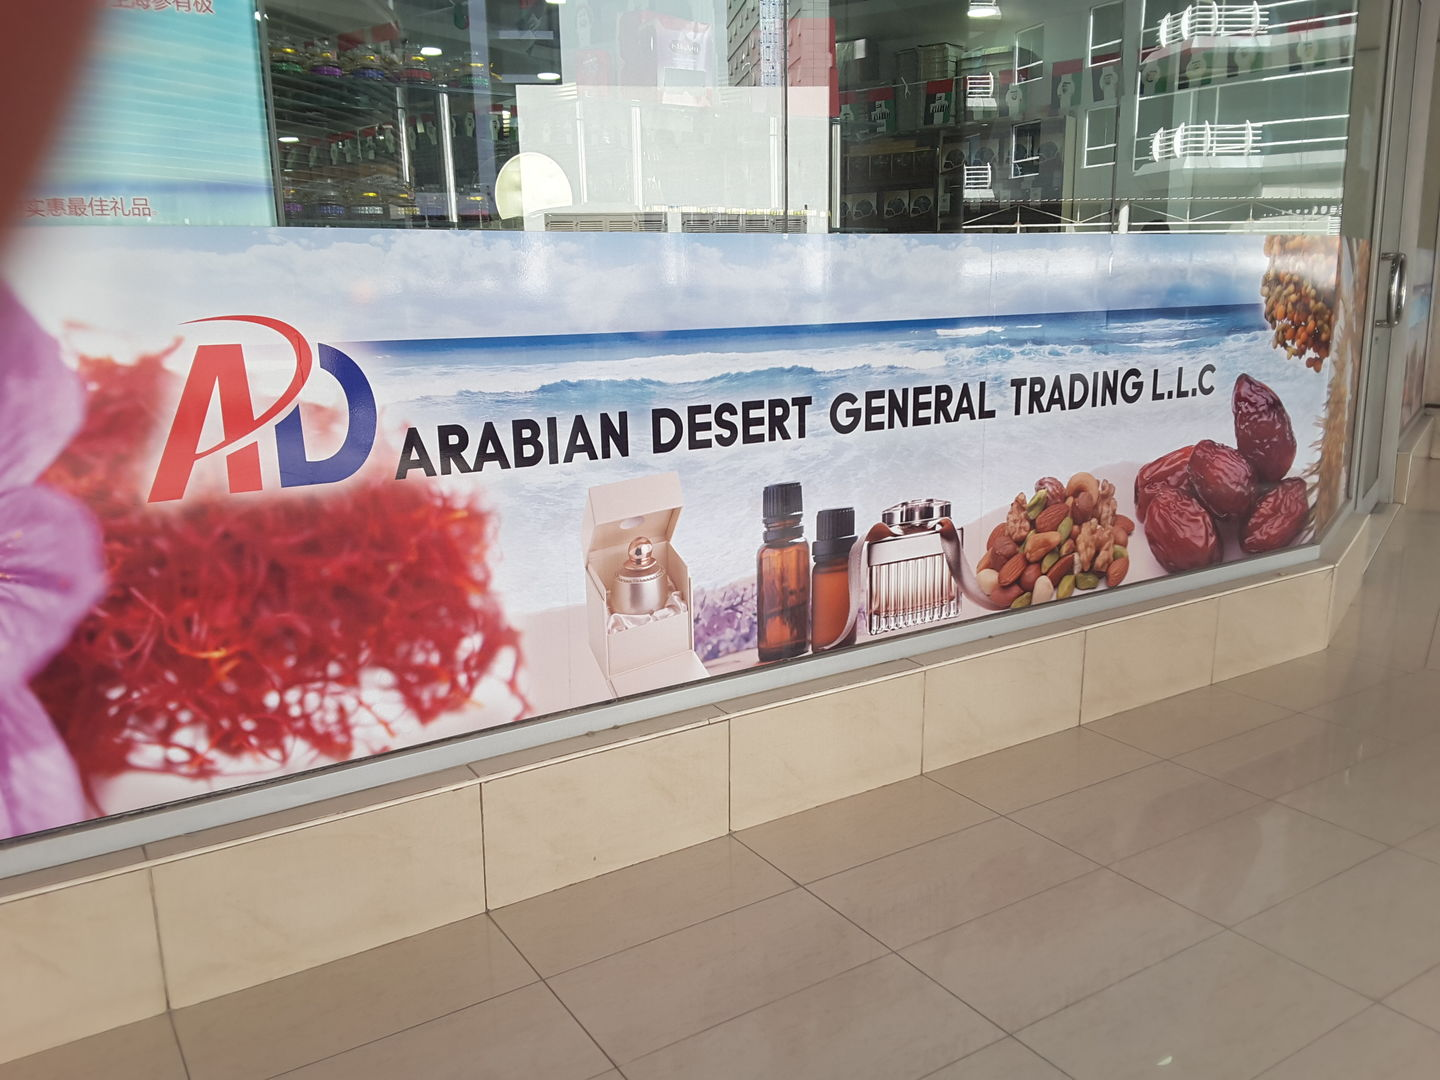 HiDubai-business-arabian-desert-general-trading-shopping-supermarkets-hypermarkets-grocery-stores-port-saeed-dubai-2